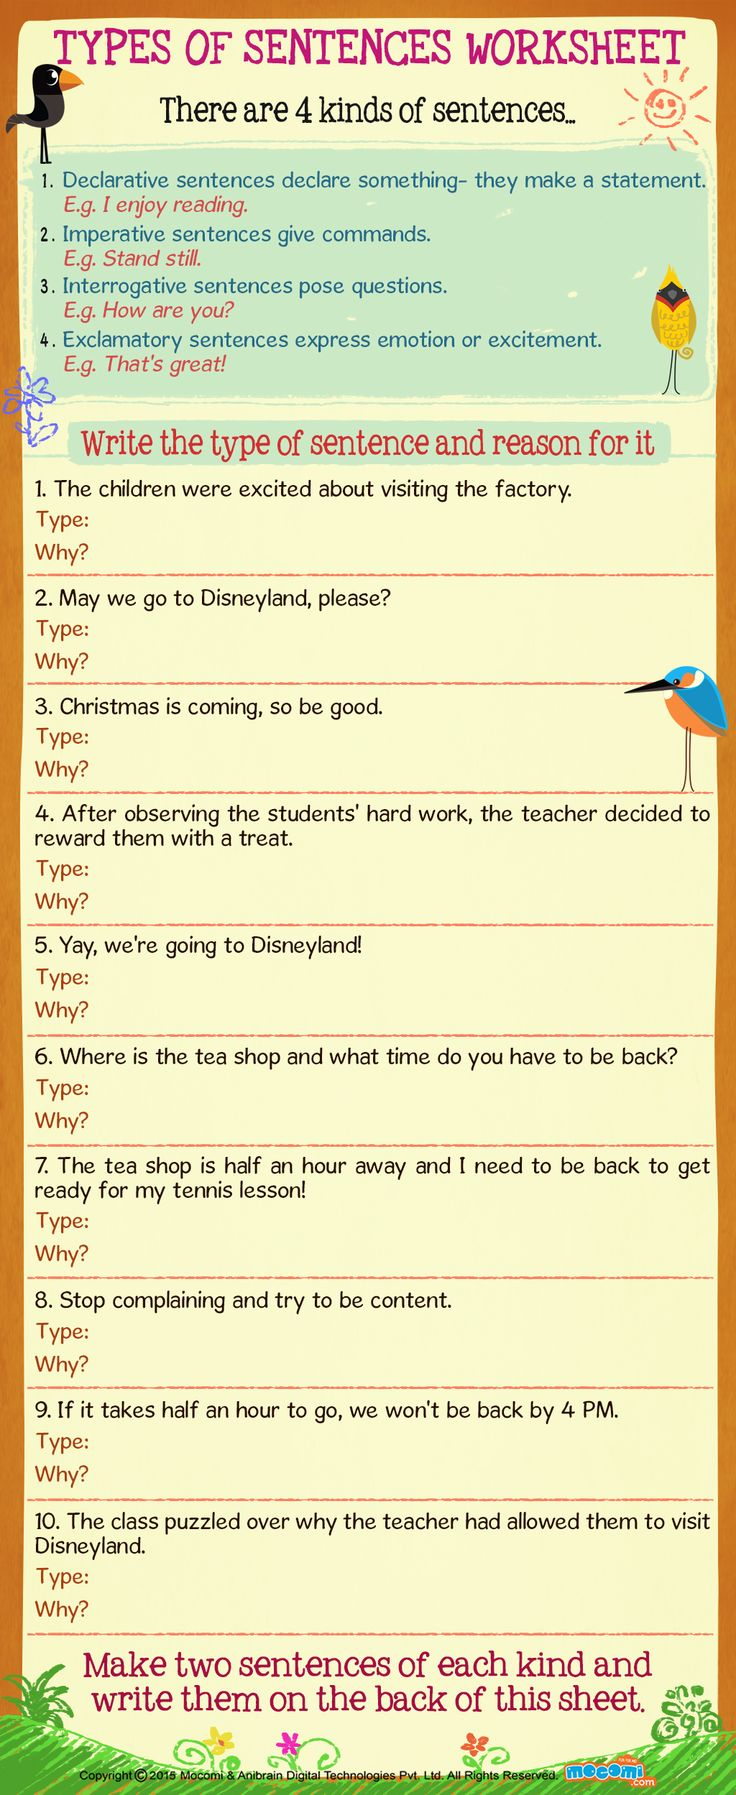 Free Worksheet Imperative Sentence Worksheets 17 best ideas about sentences in english on pinterest make learn the 4 types of language declarative imperative interrogative and